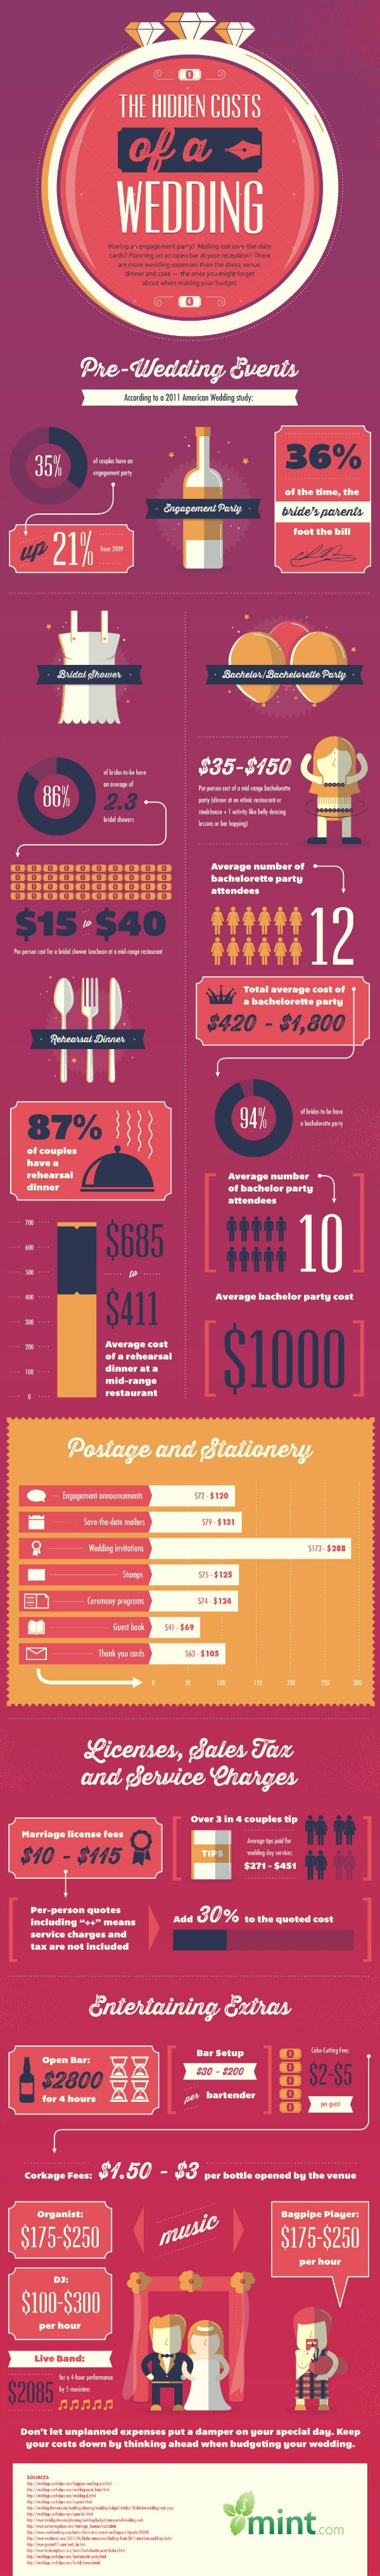 The Hidden Cost of Weddings Infographic by our CSD interviewee Erika Torres GoGirlfinance.com